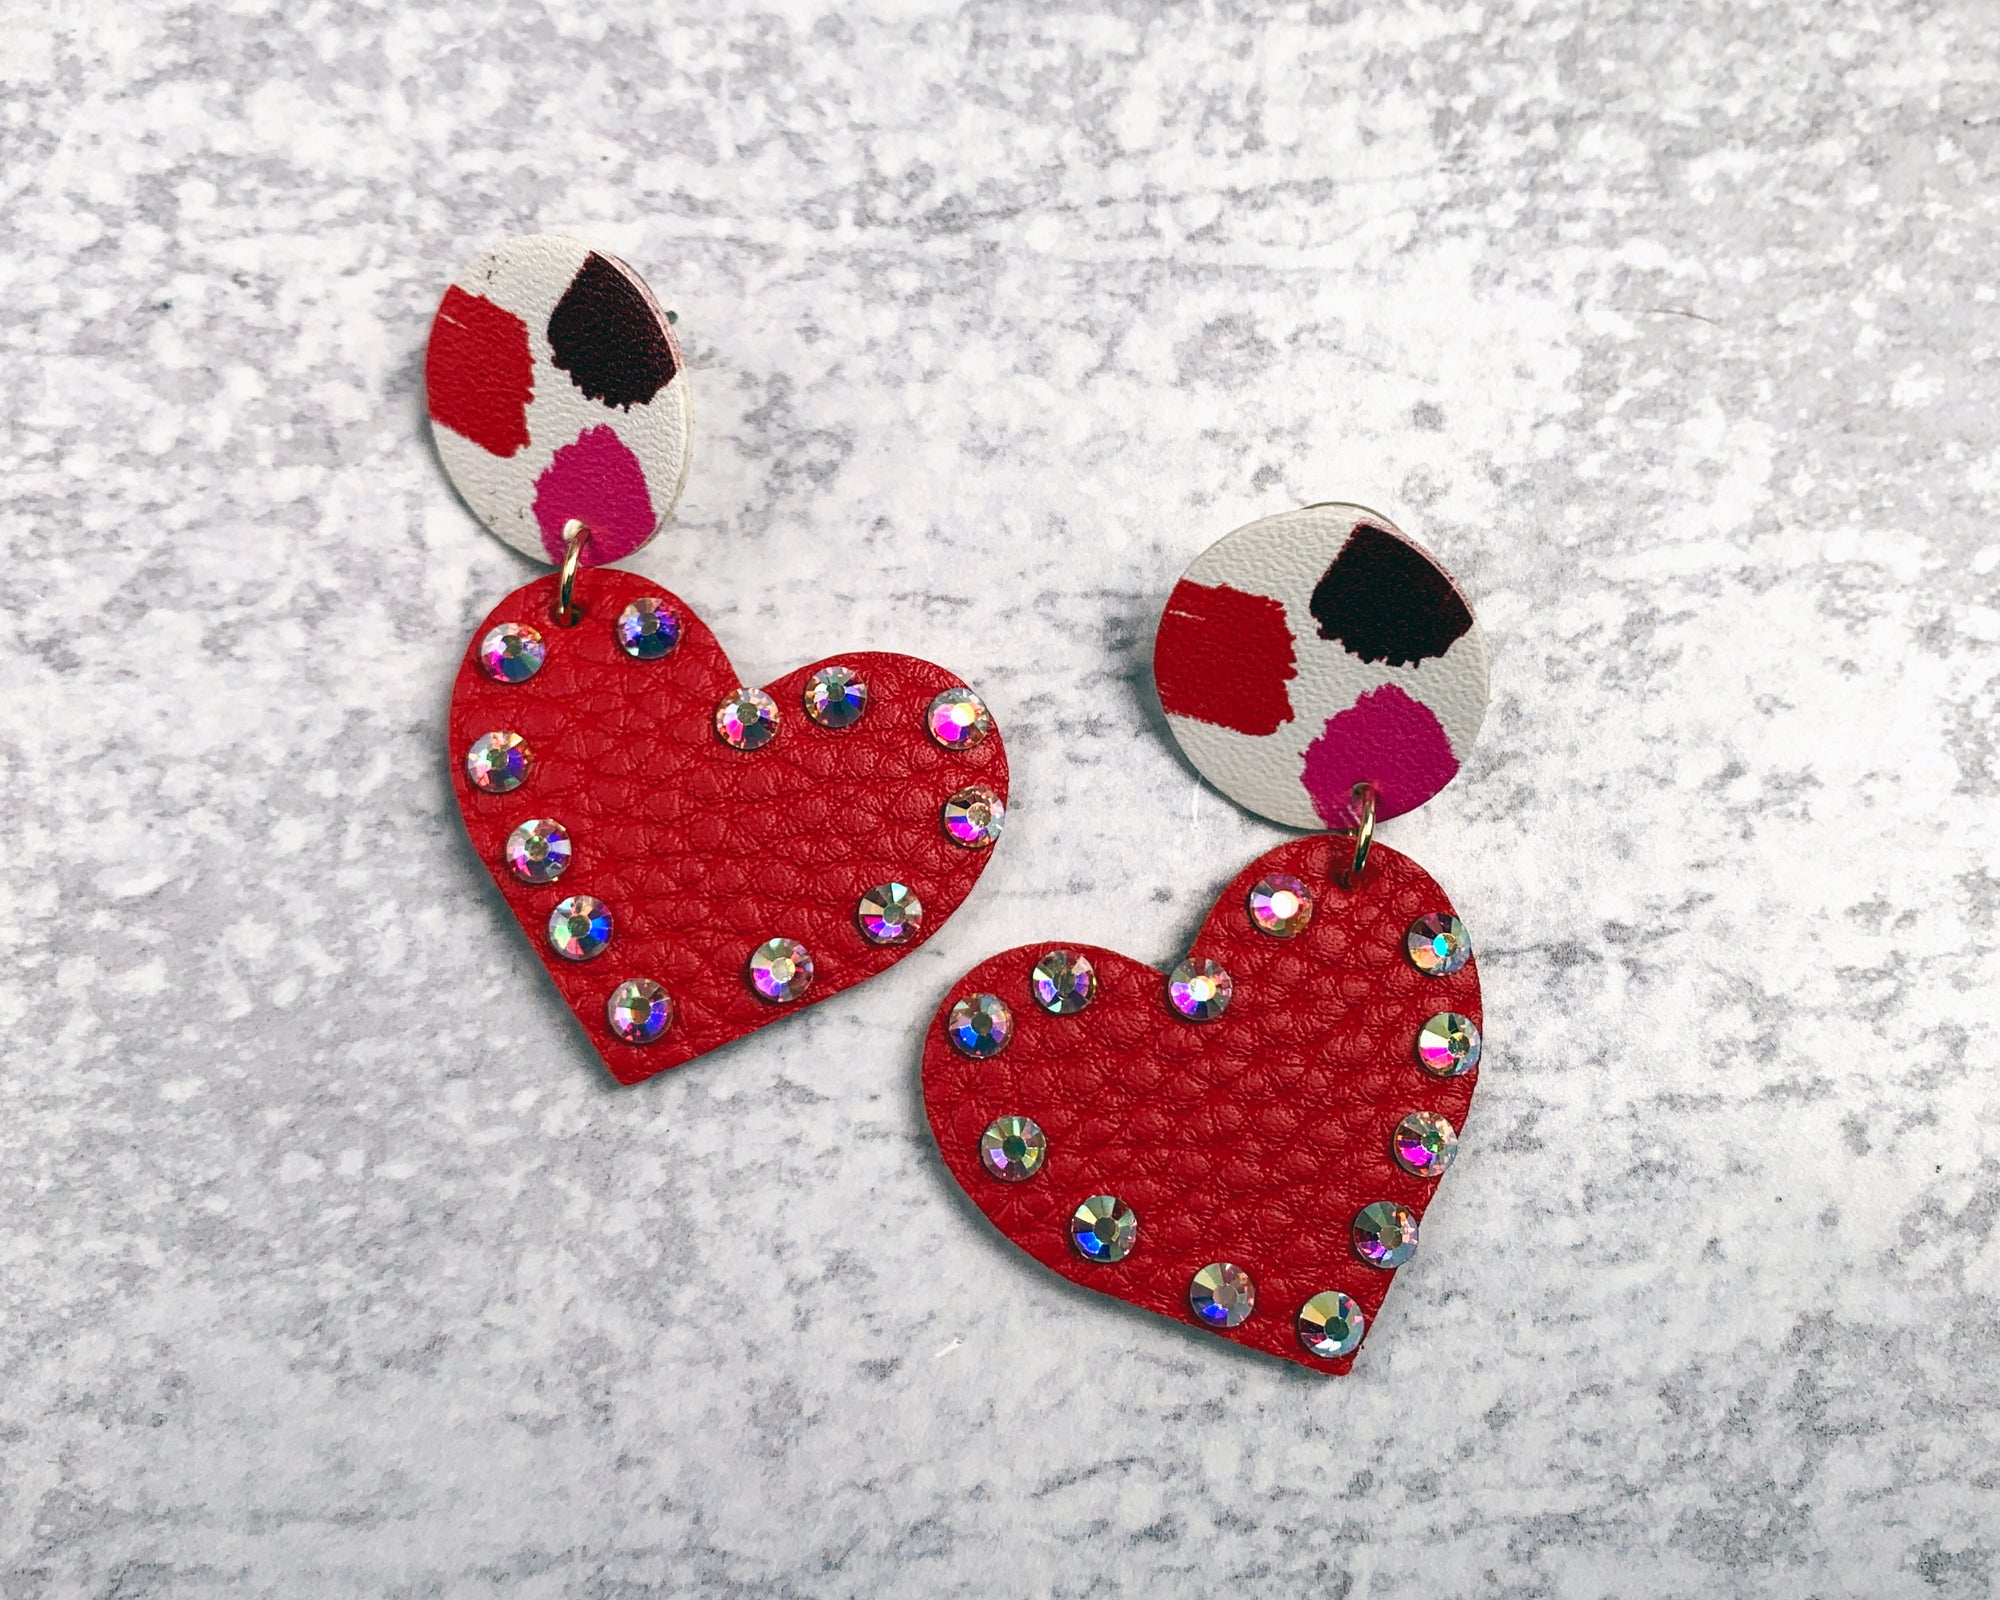 Leather Heart Bling Earrings